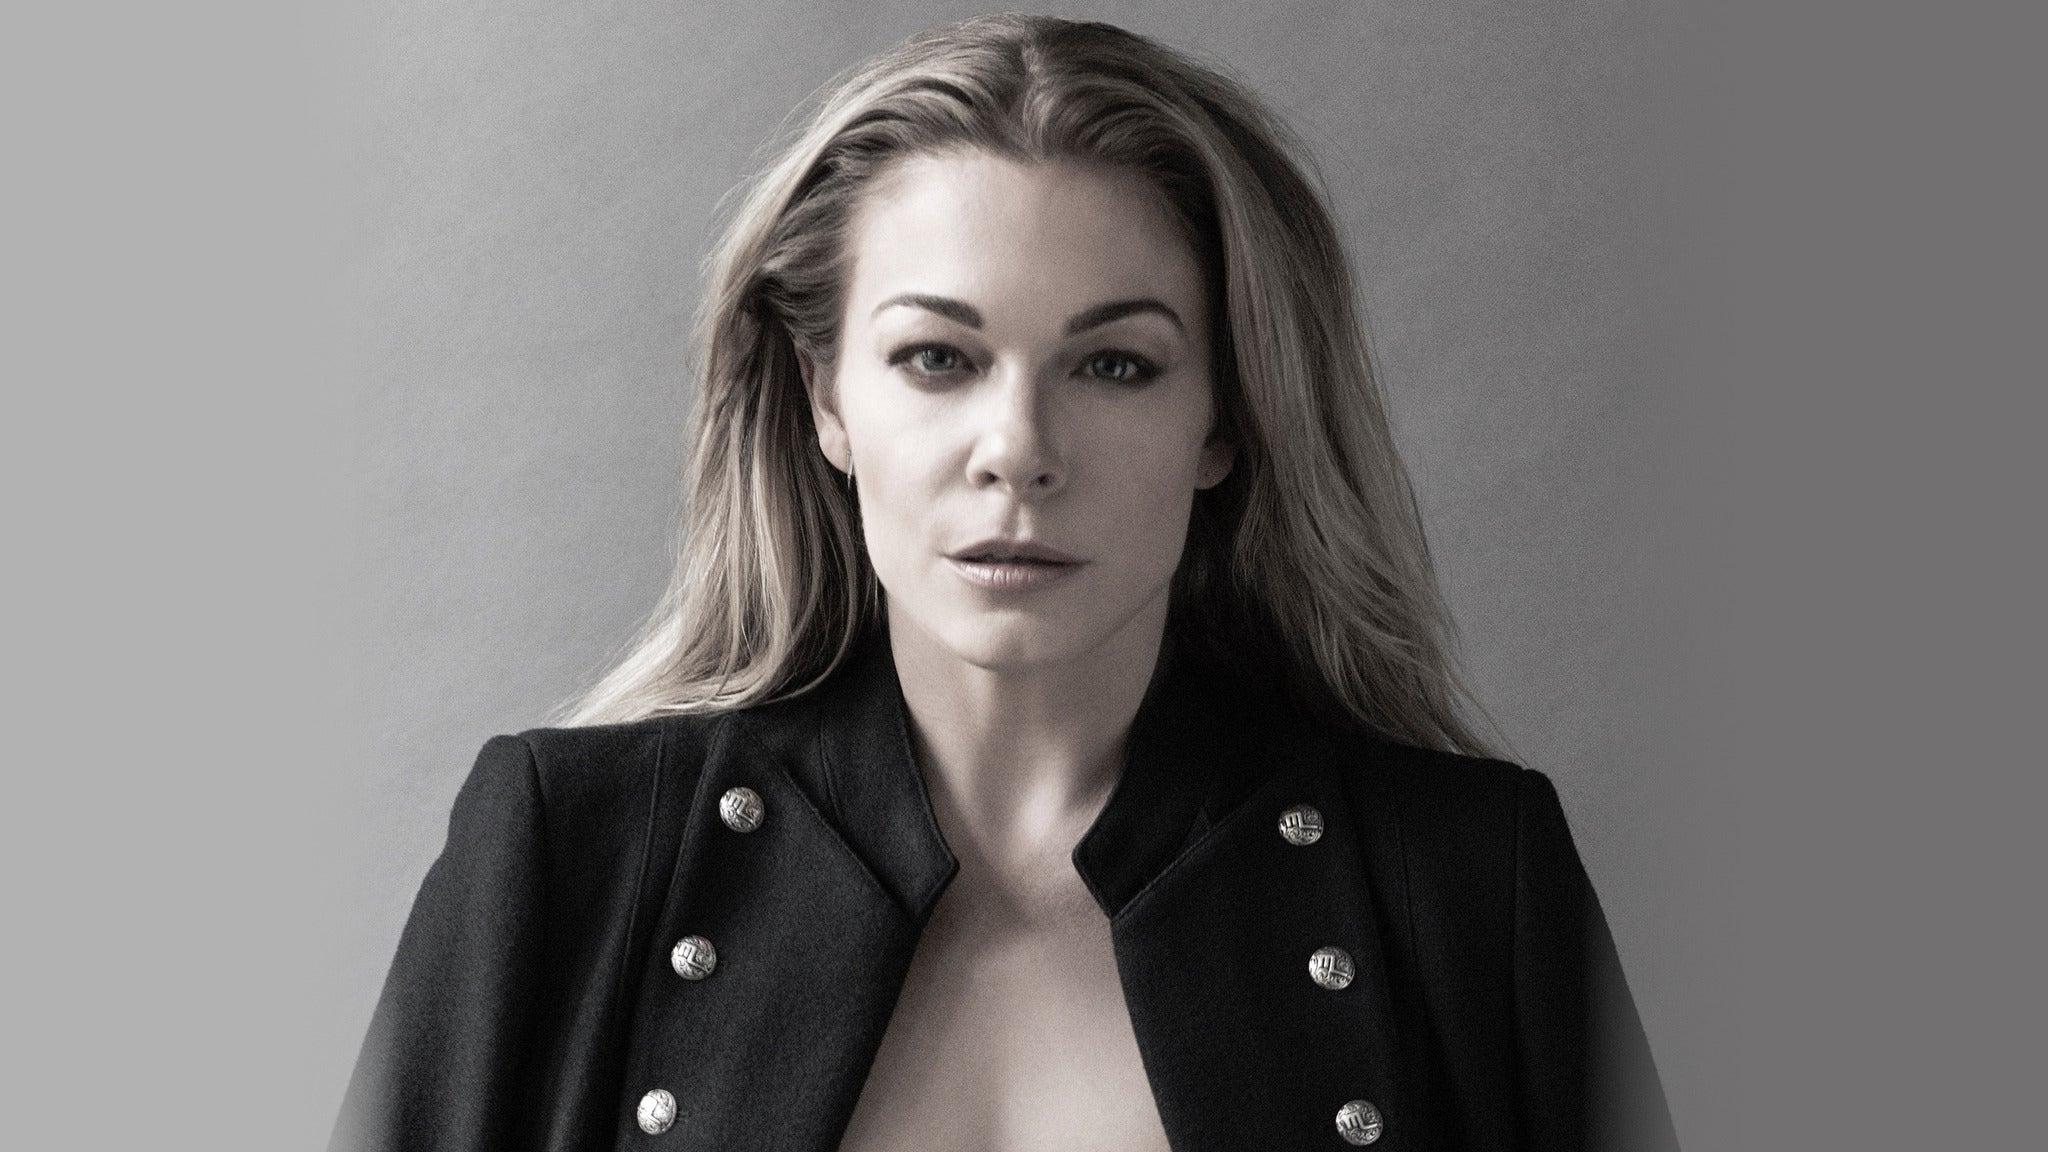 LeAnn Rimes at Skagit Valley Casino Pacific Showroom - Bow, WA 98232